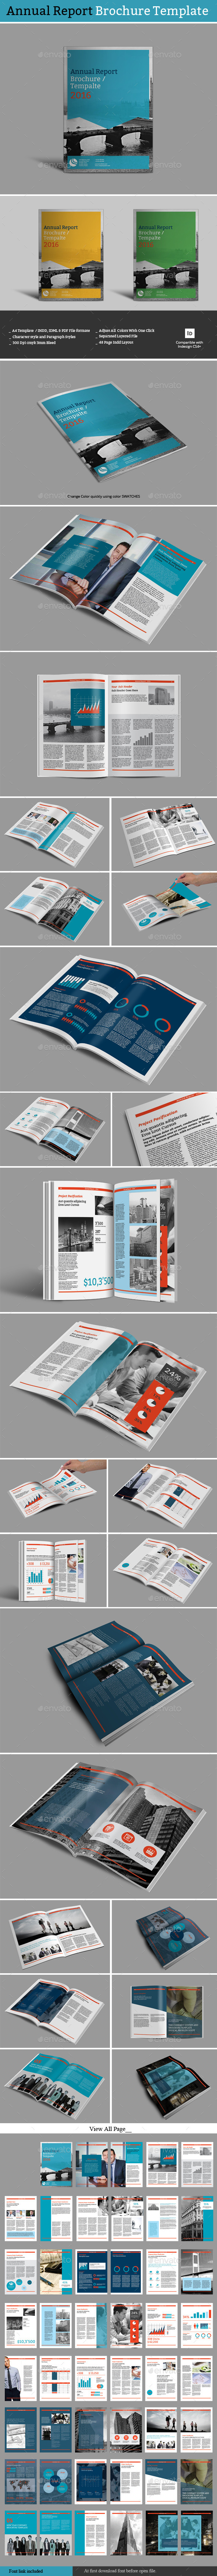 Annual Report Brochure Template - Informational Brochures